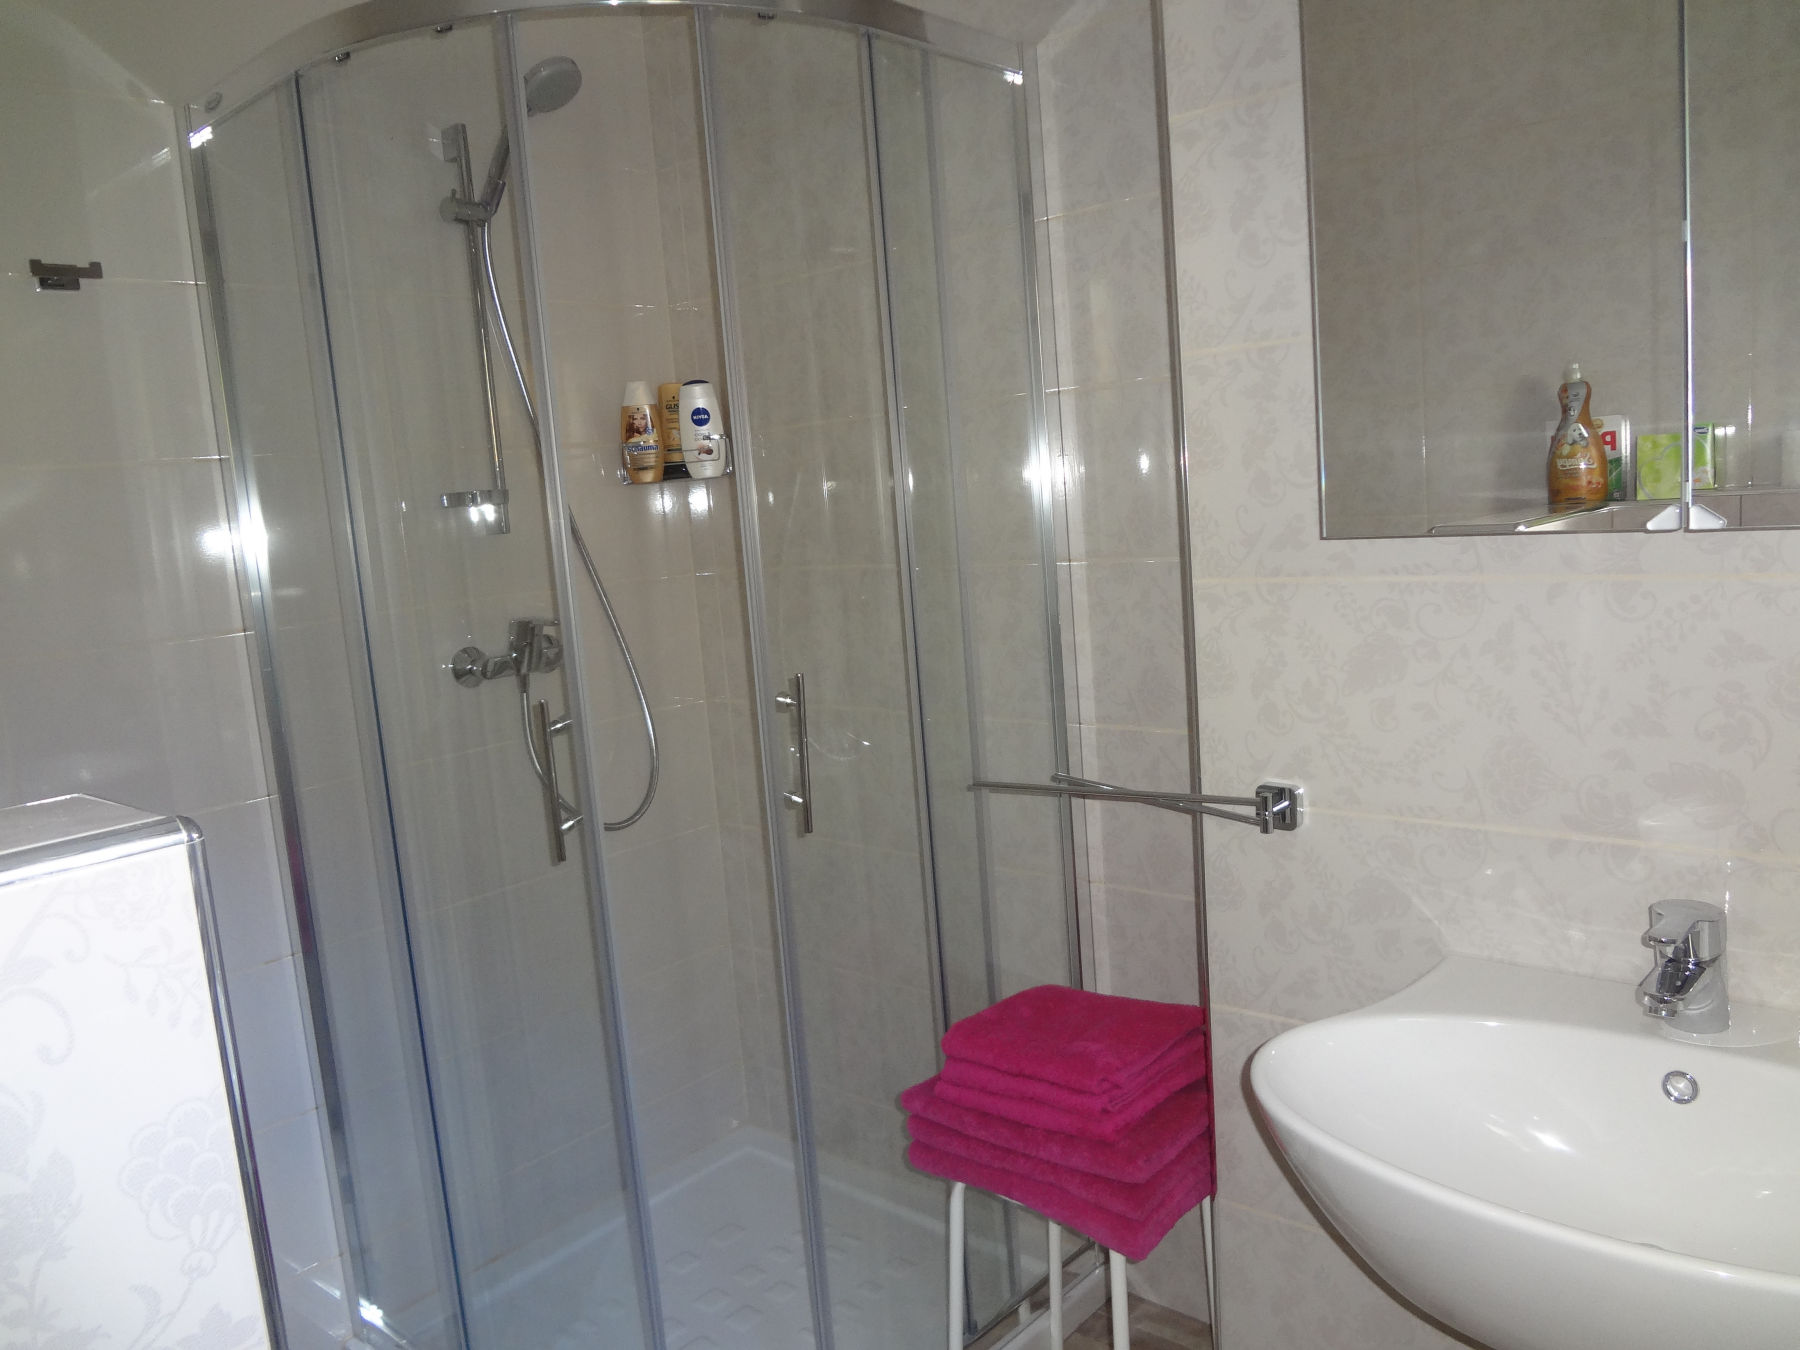 A glass shower stall in the bathroom of the Fine Stay Apartment, the Bled area of Slovenia